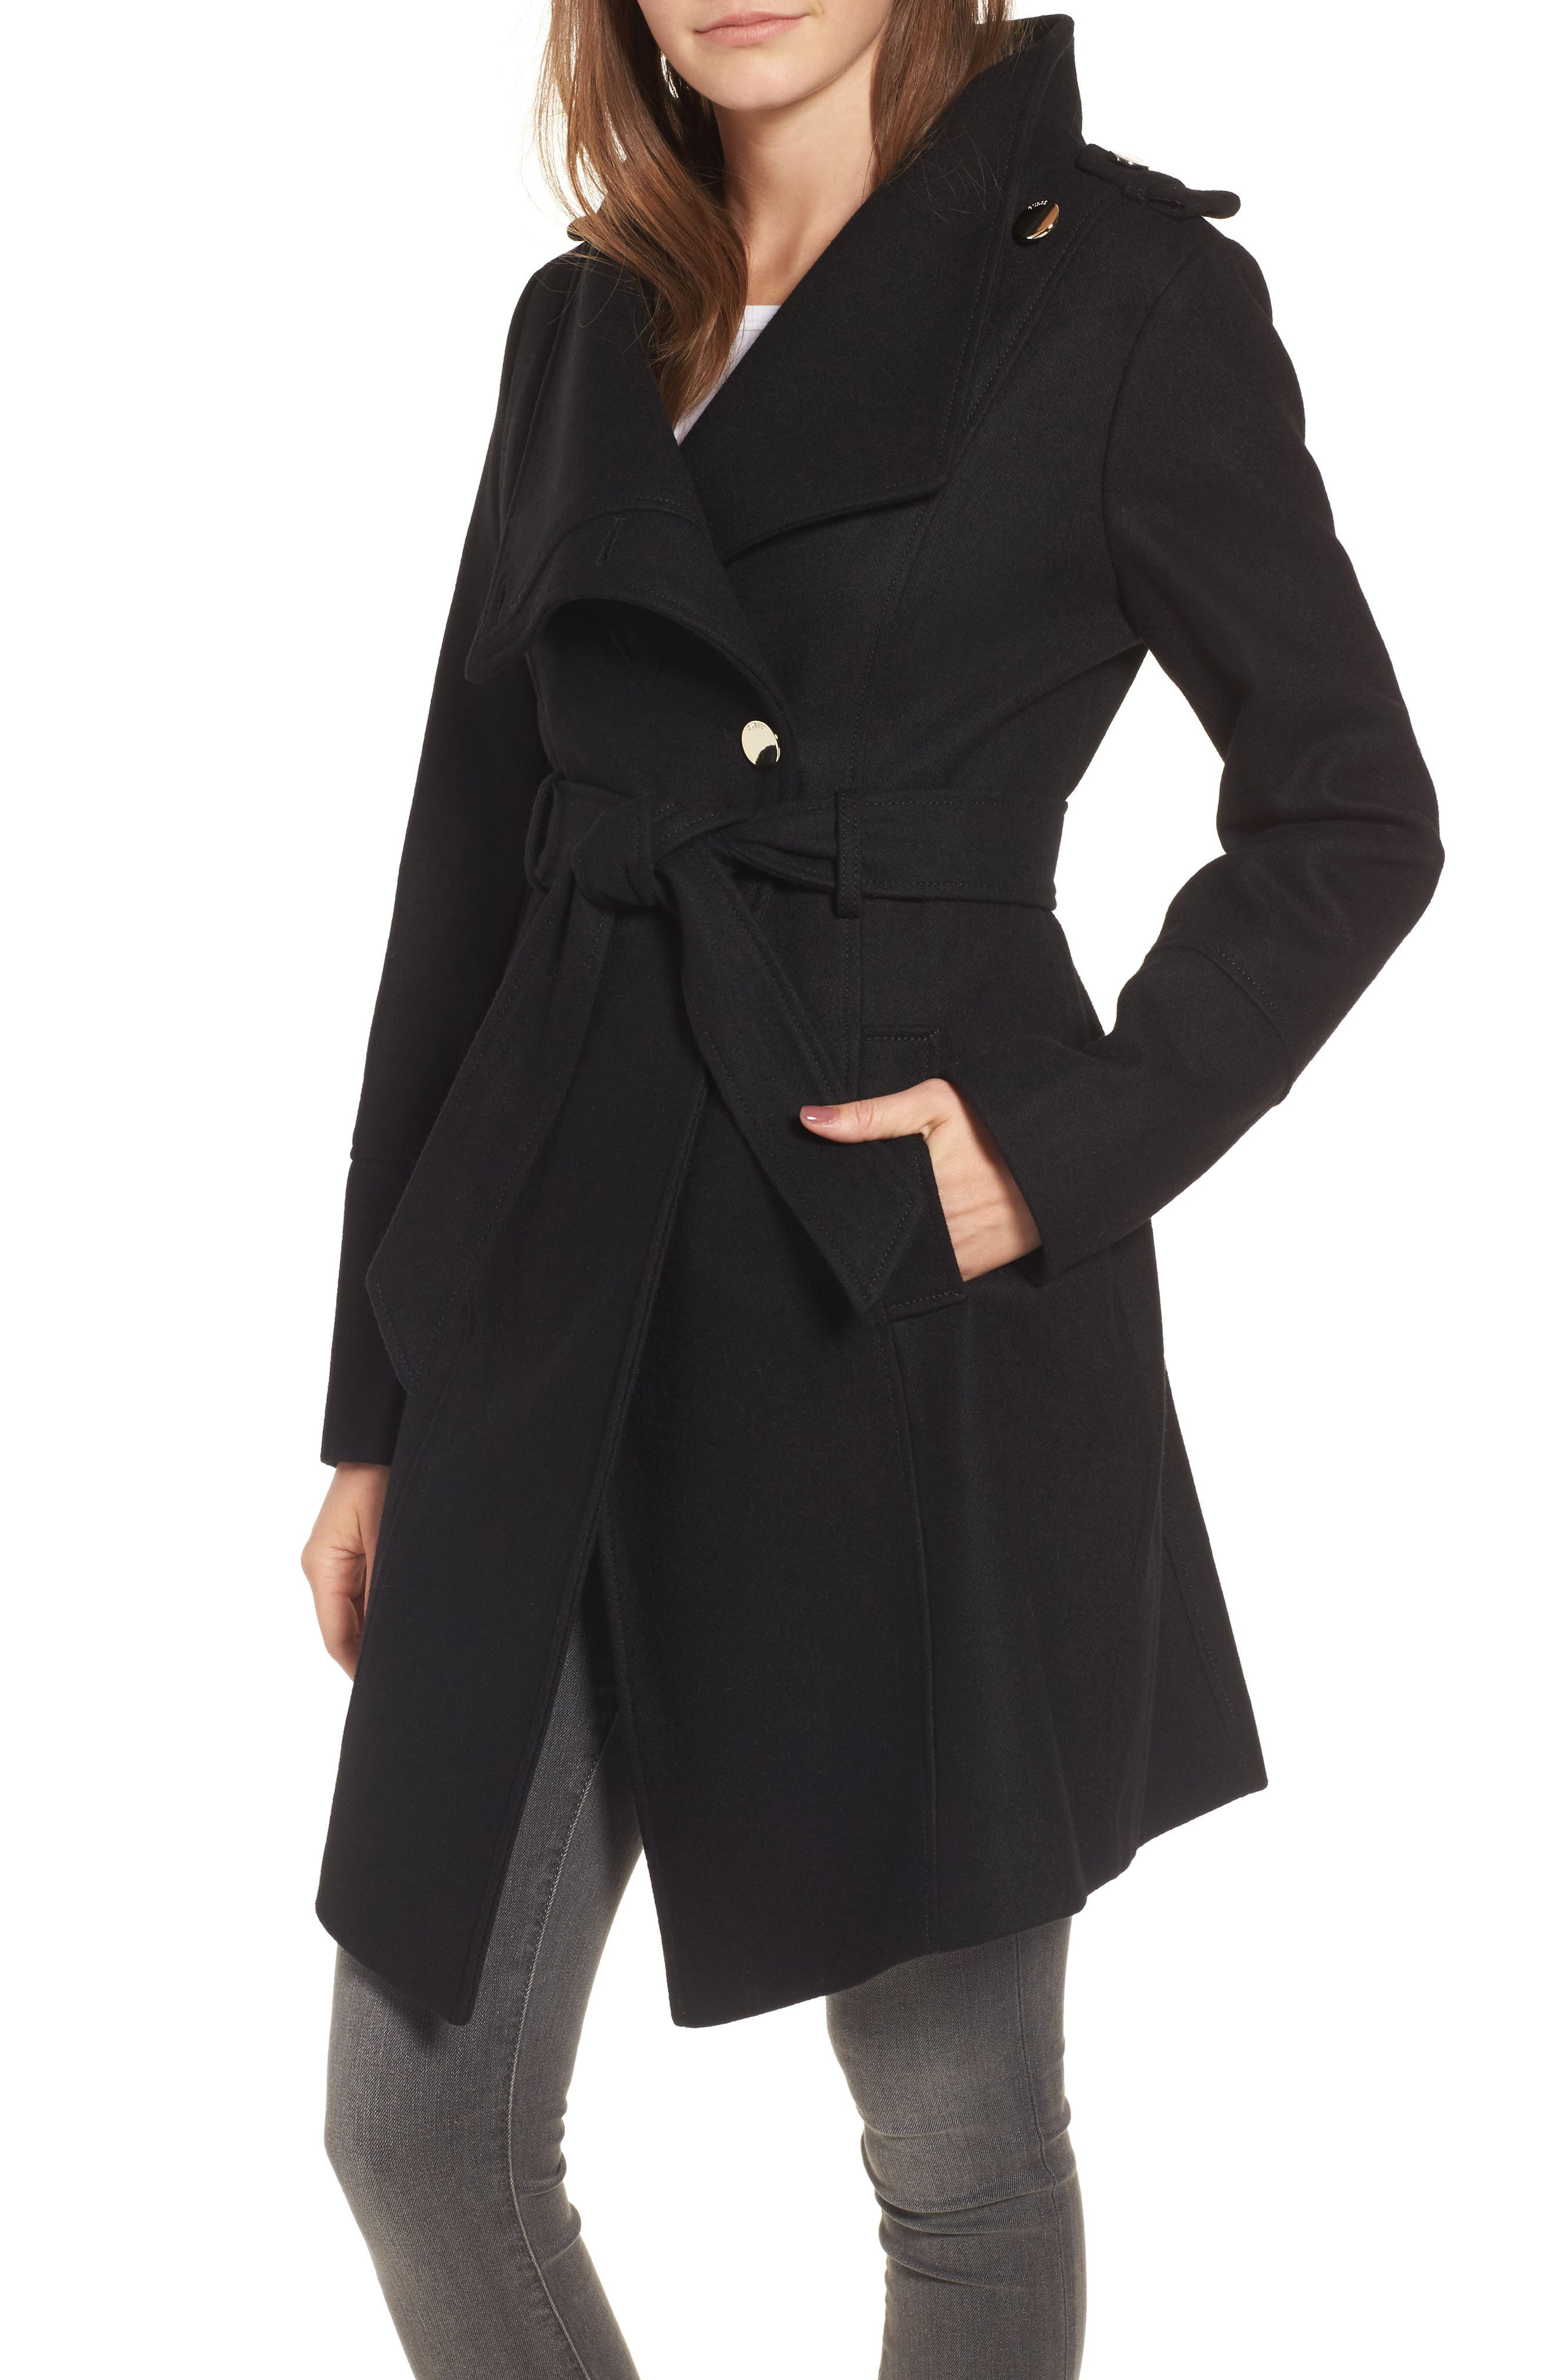 Guess coats for ladies